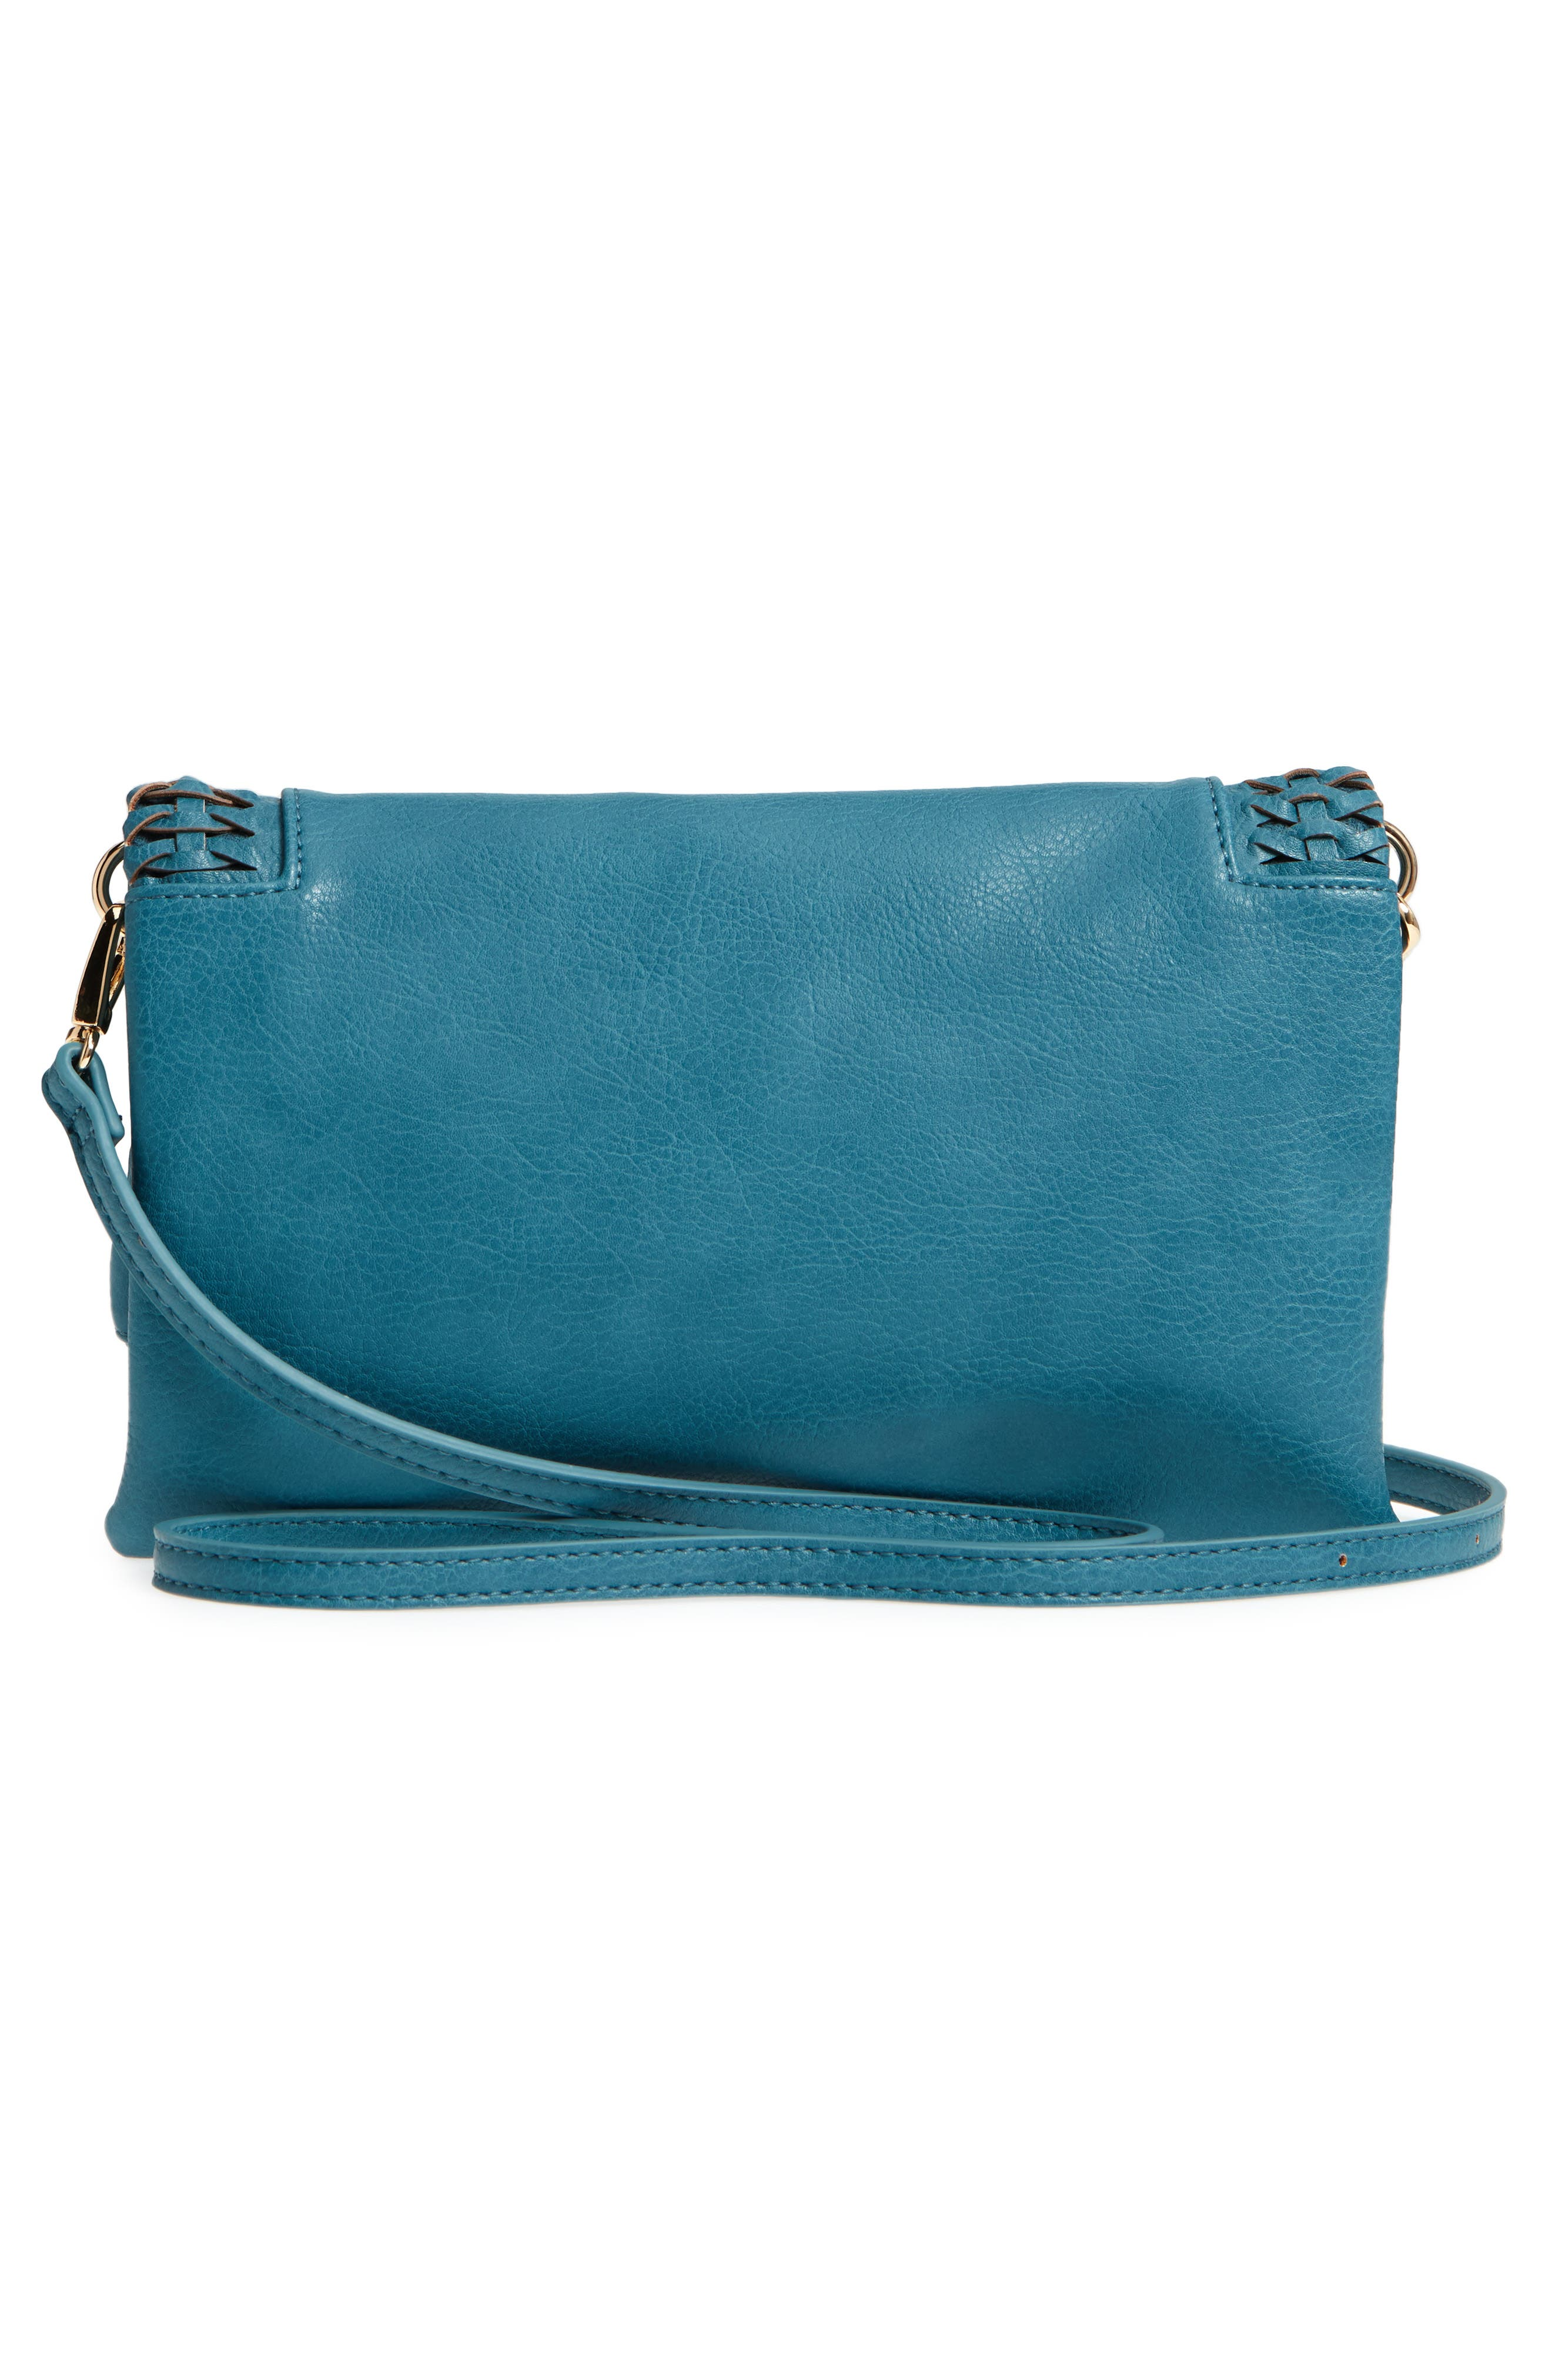 Tara Whipstitched Faux Leather Clutch,                             Alternate thumbnail 6, color,